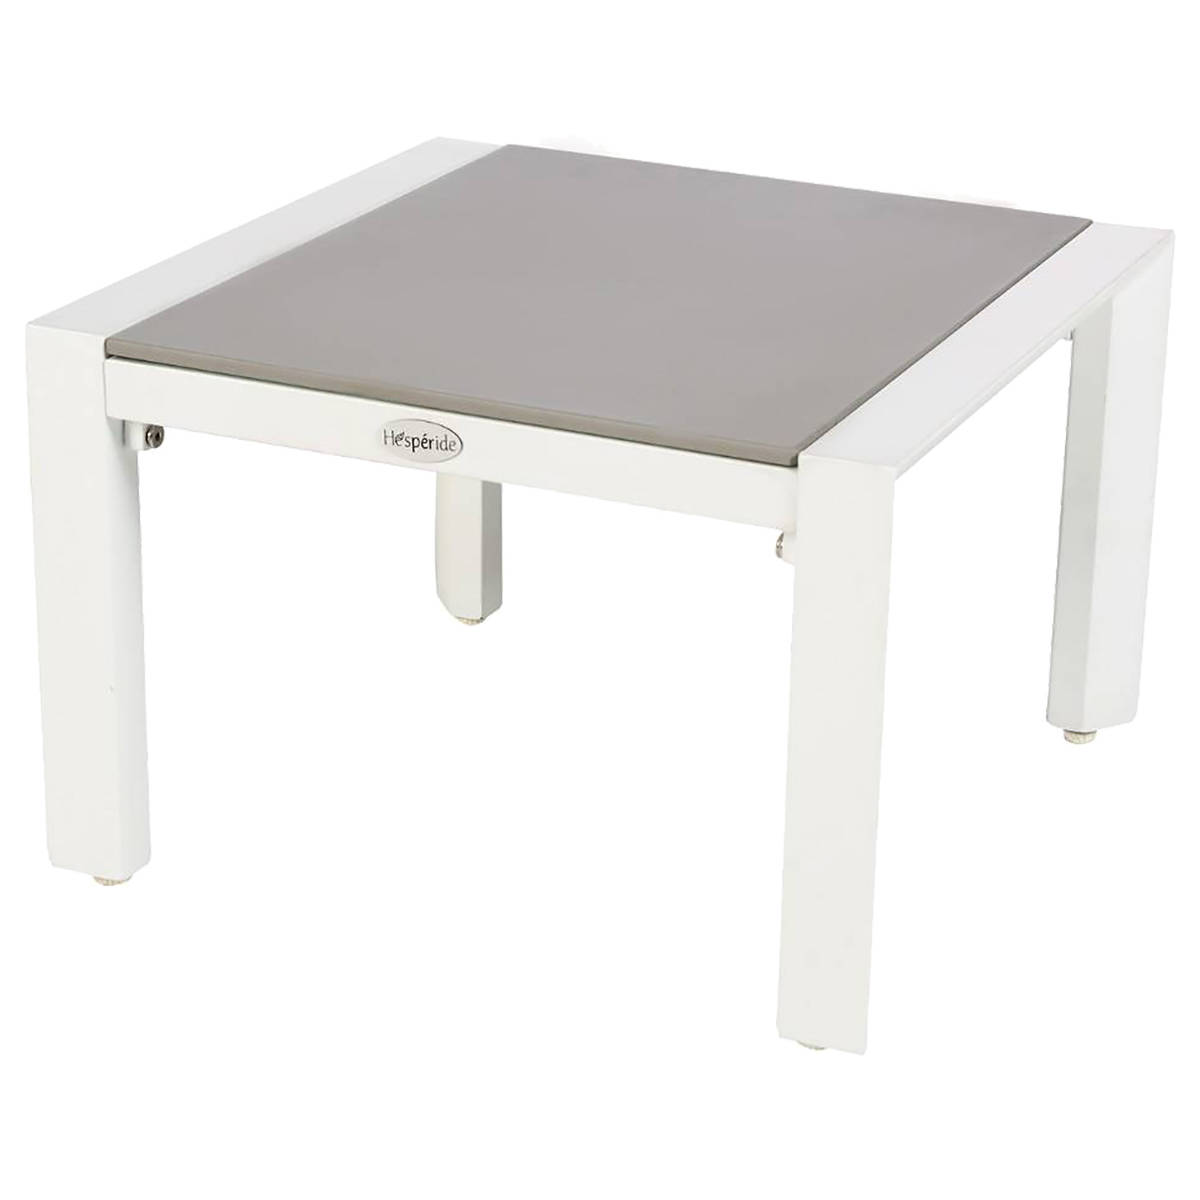 Table D Appoint De Jardin Table D 39appoint De Jardin Carrée Titanium Perle And Blanc